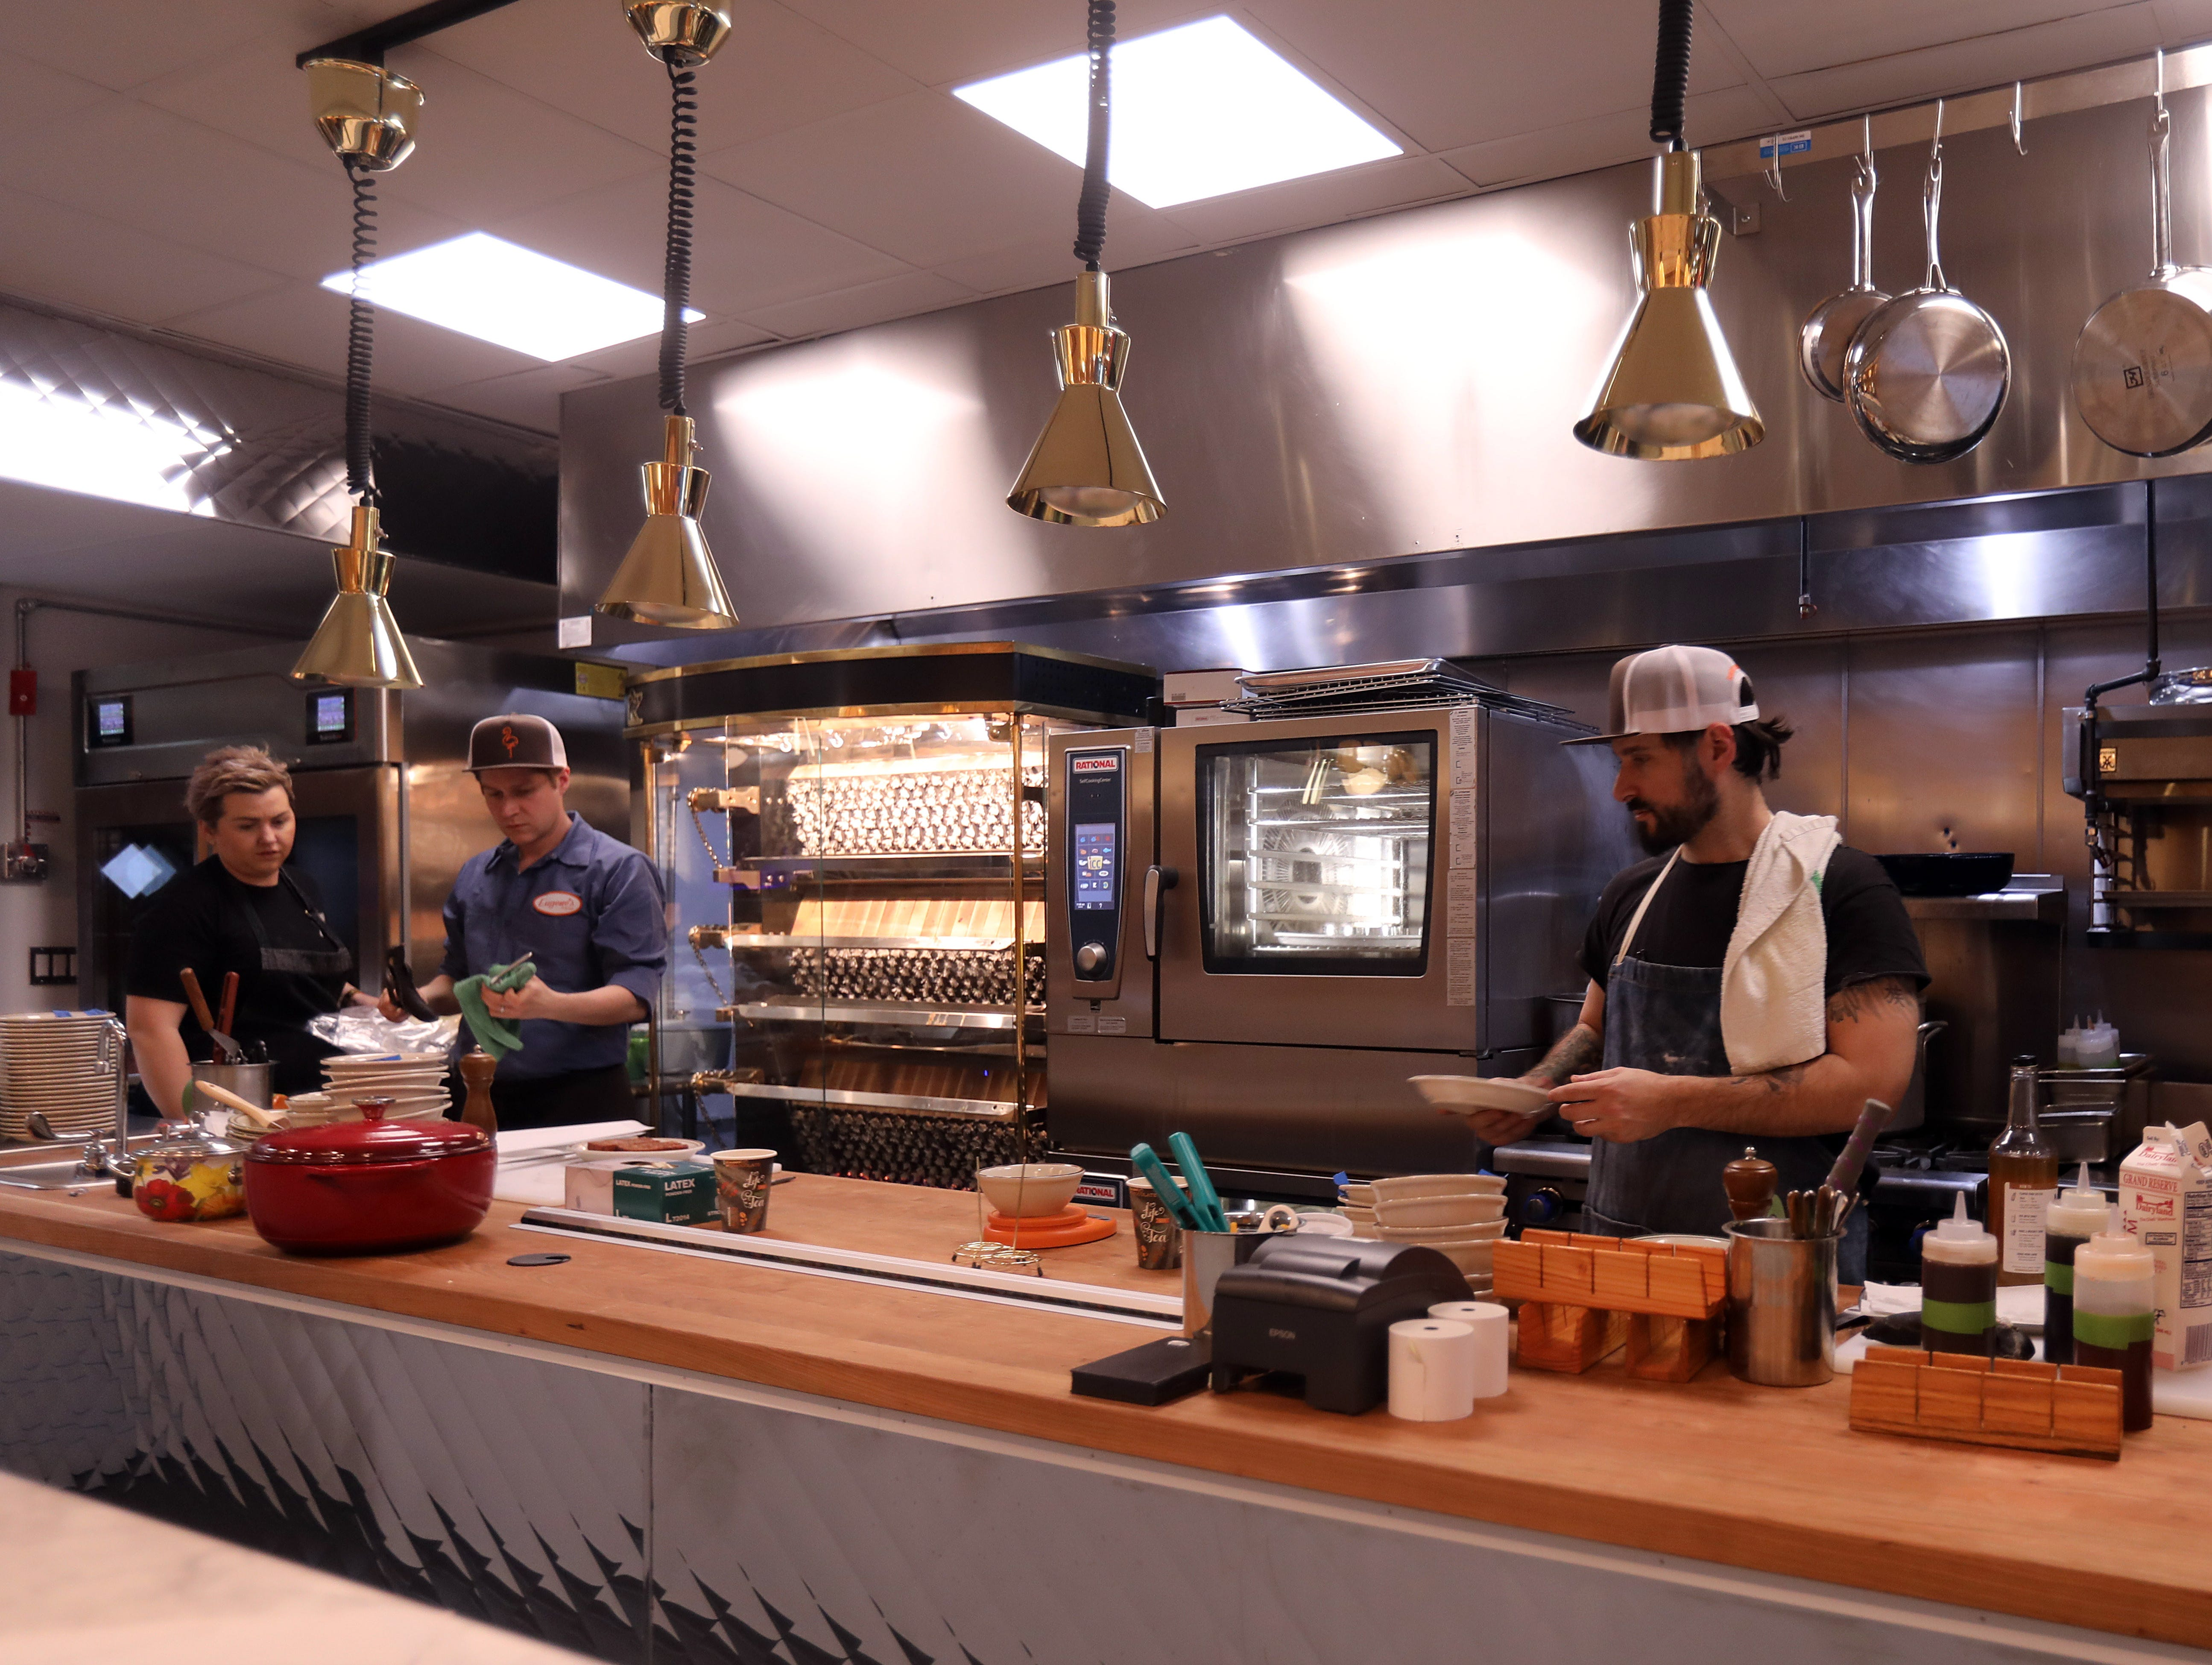 From left, John Poiarkoff, culinary director, Iulia Mahu, chef de cuisine, and David DiBari, owner are preparing food at at Eugene's in Port Chester March 29, 2019. The restaurant has a 70s-era basement vibe with wood panels, floral wallpaper, laminate counters, and their icon is a pink flamingo.